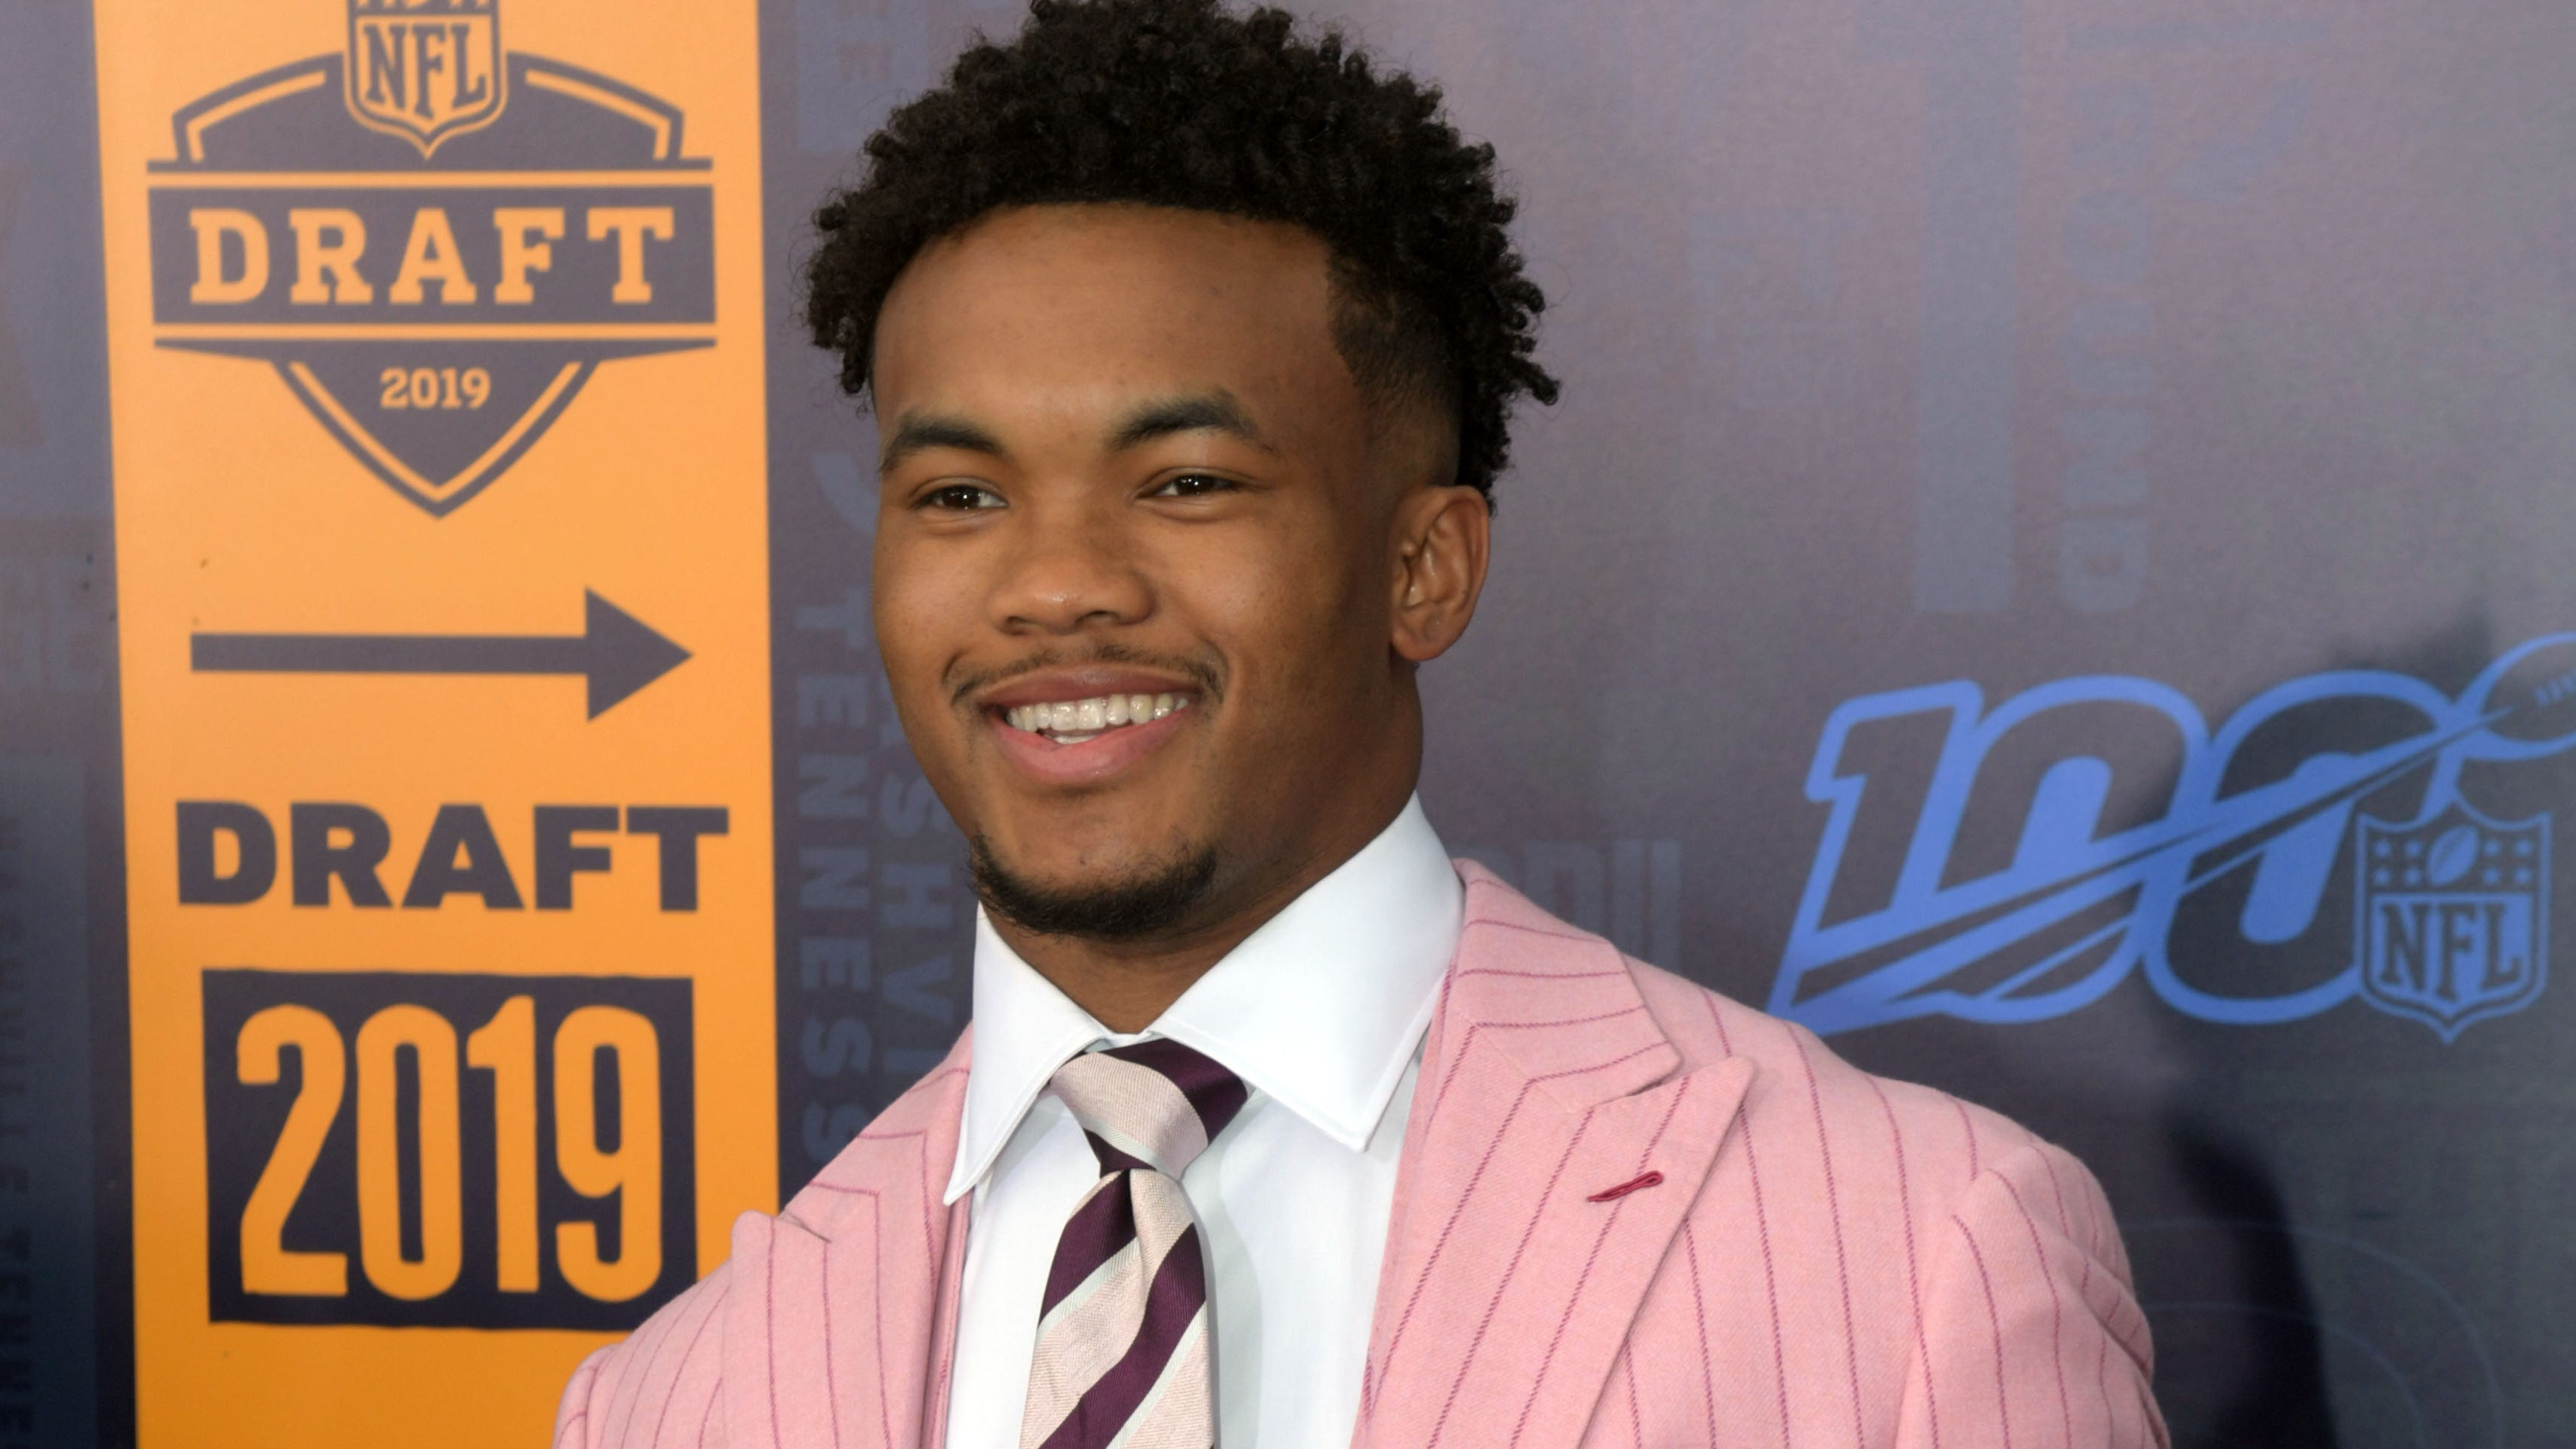 Former Oklahoma QB Kyler Murray on the red carpet of the NFL draft in Nashville.